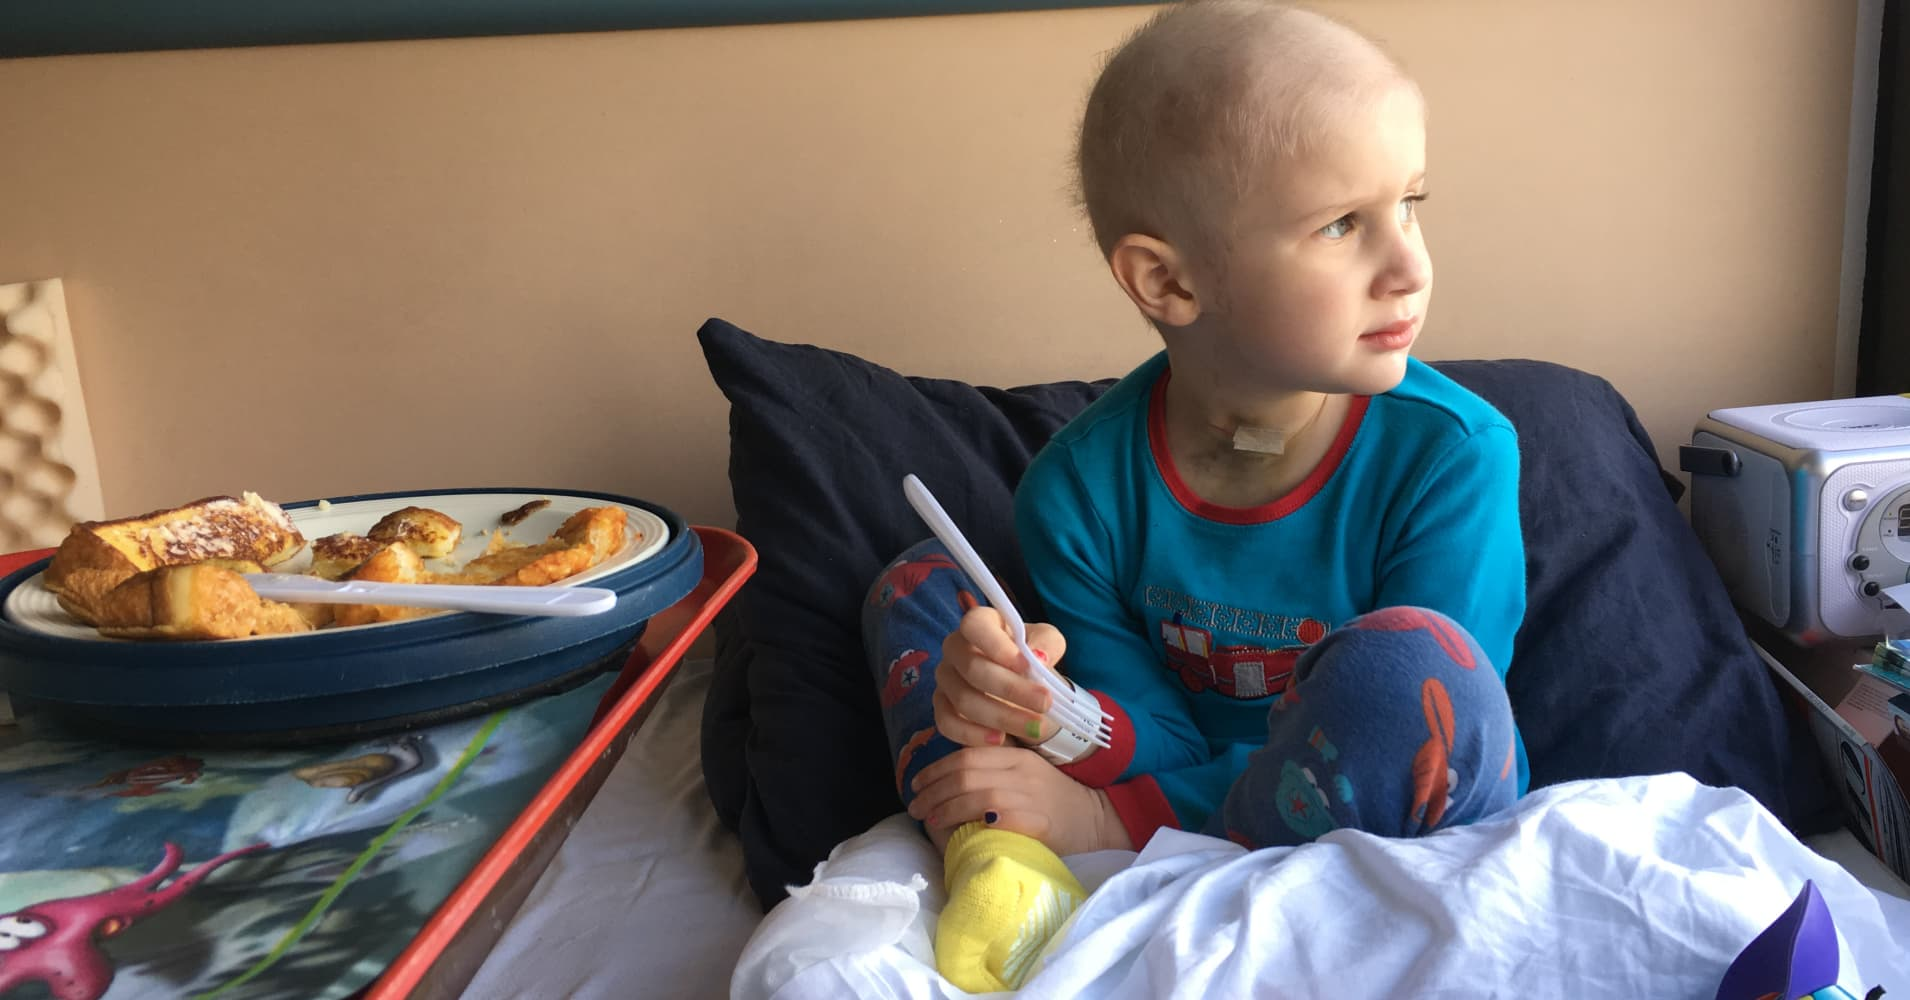 Op-ed: While my son battles leukemia, the health care system is under assault